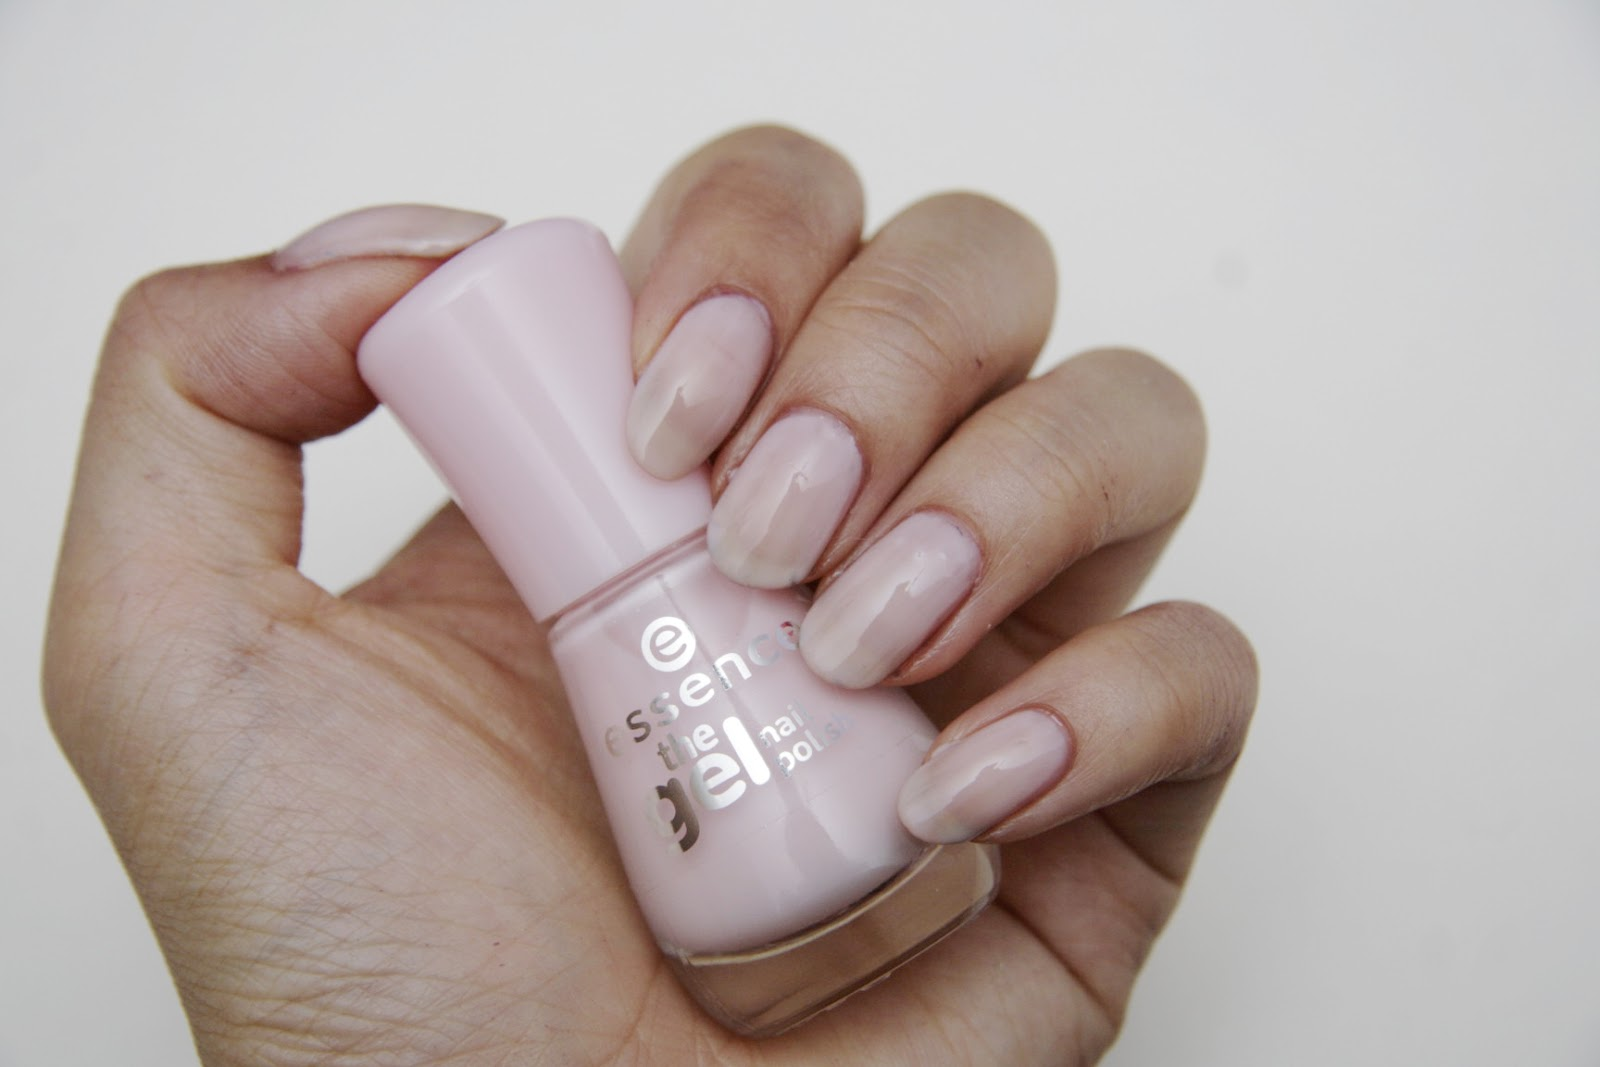 fun size beauty: Essence The Gel Nail Polish + Base Coat + Top Coat